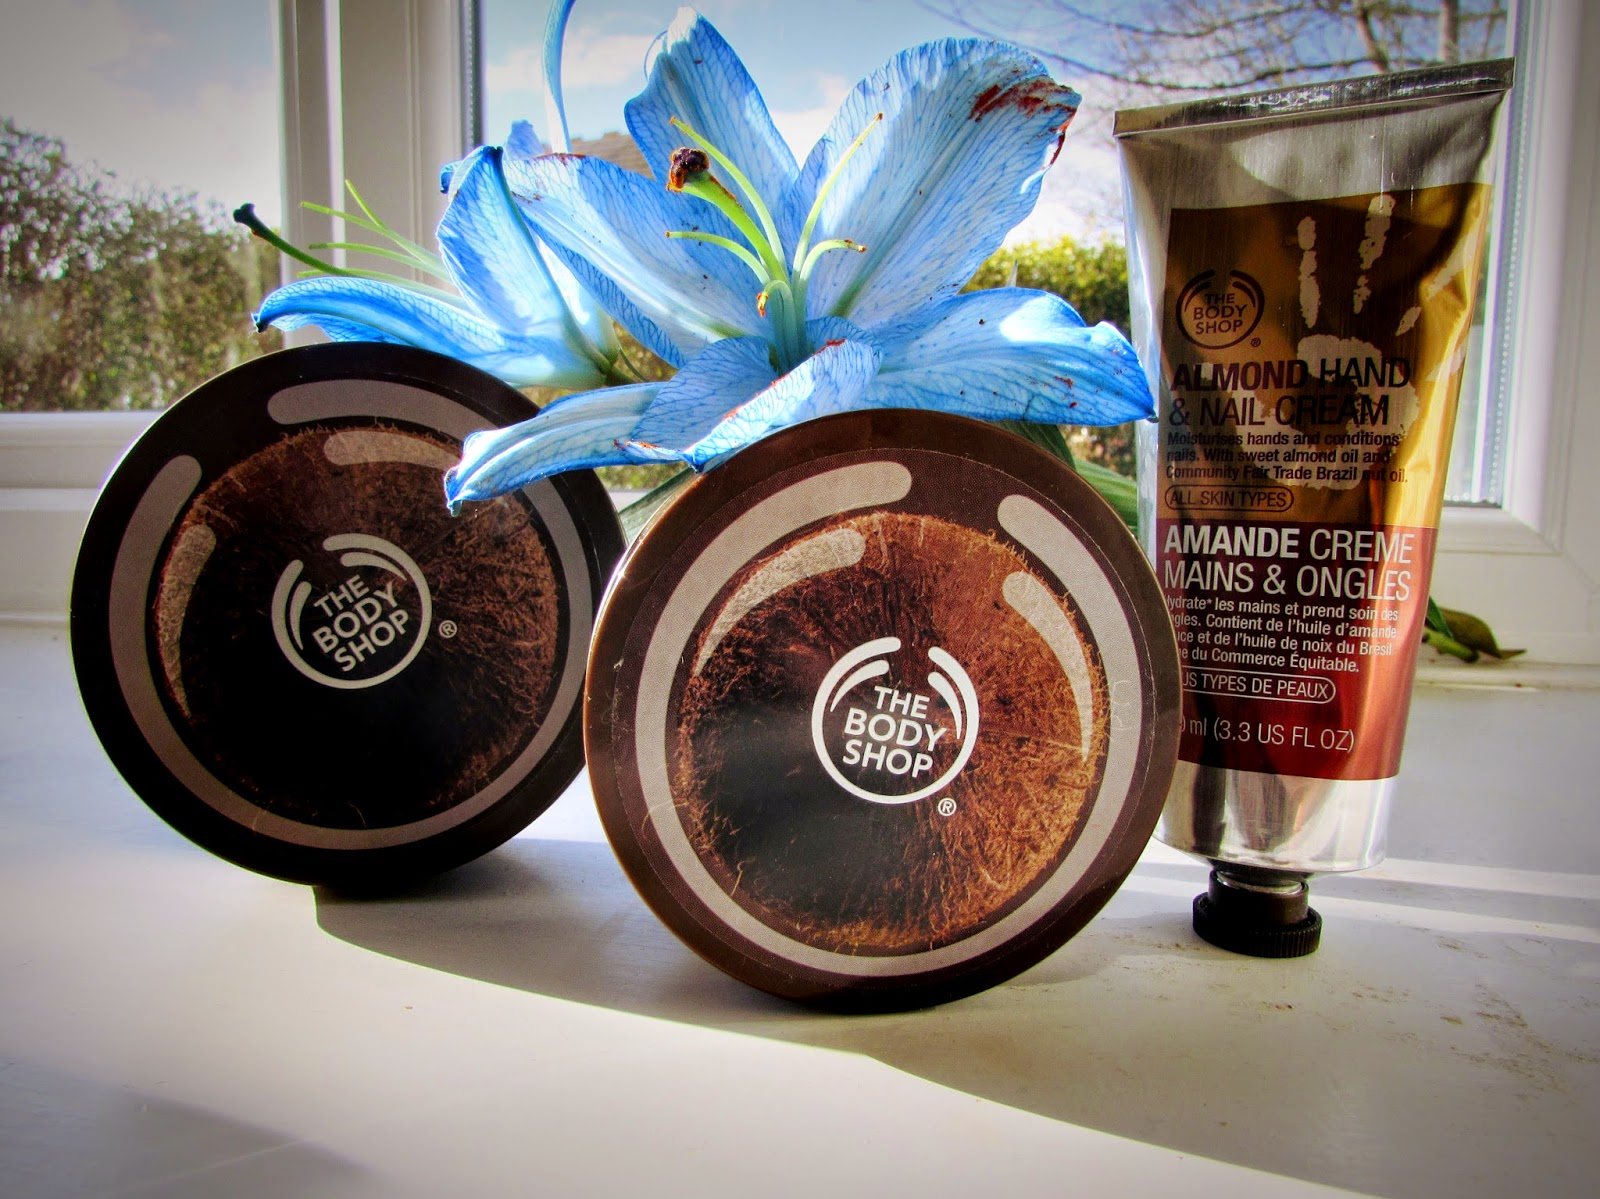 The Body Shop | Coconut body butter |Coconut body scrub | Almond hand and nail cream